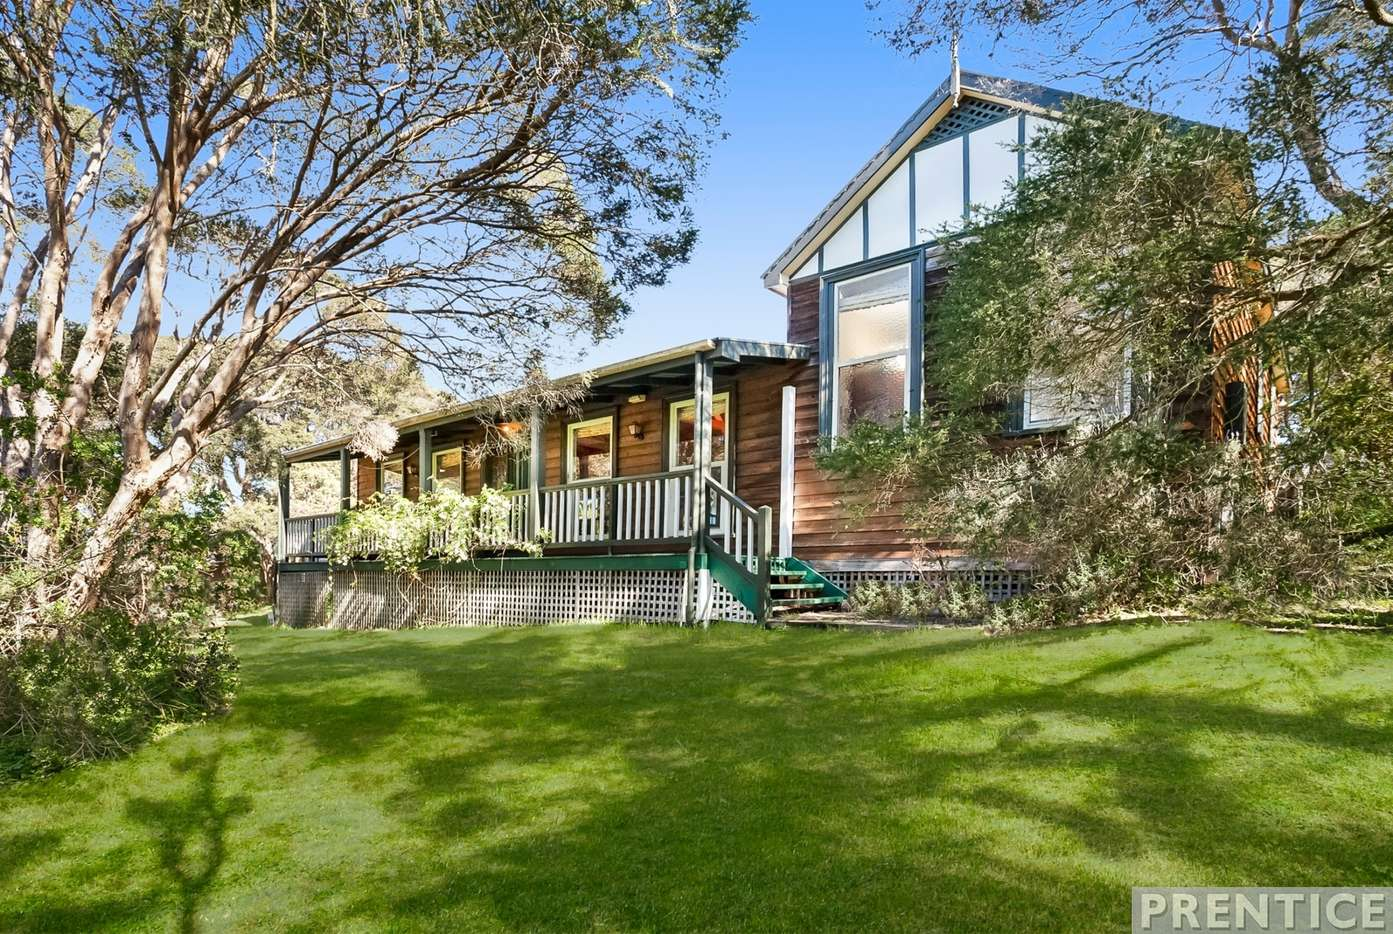 Main view of Homely house listing, 37 Parson Street, Rye, VIC 3941